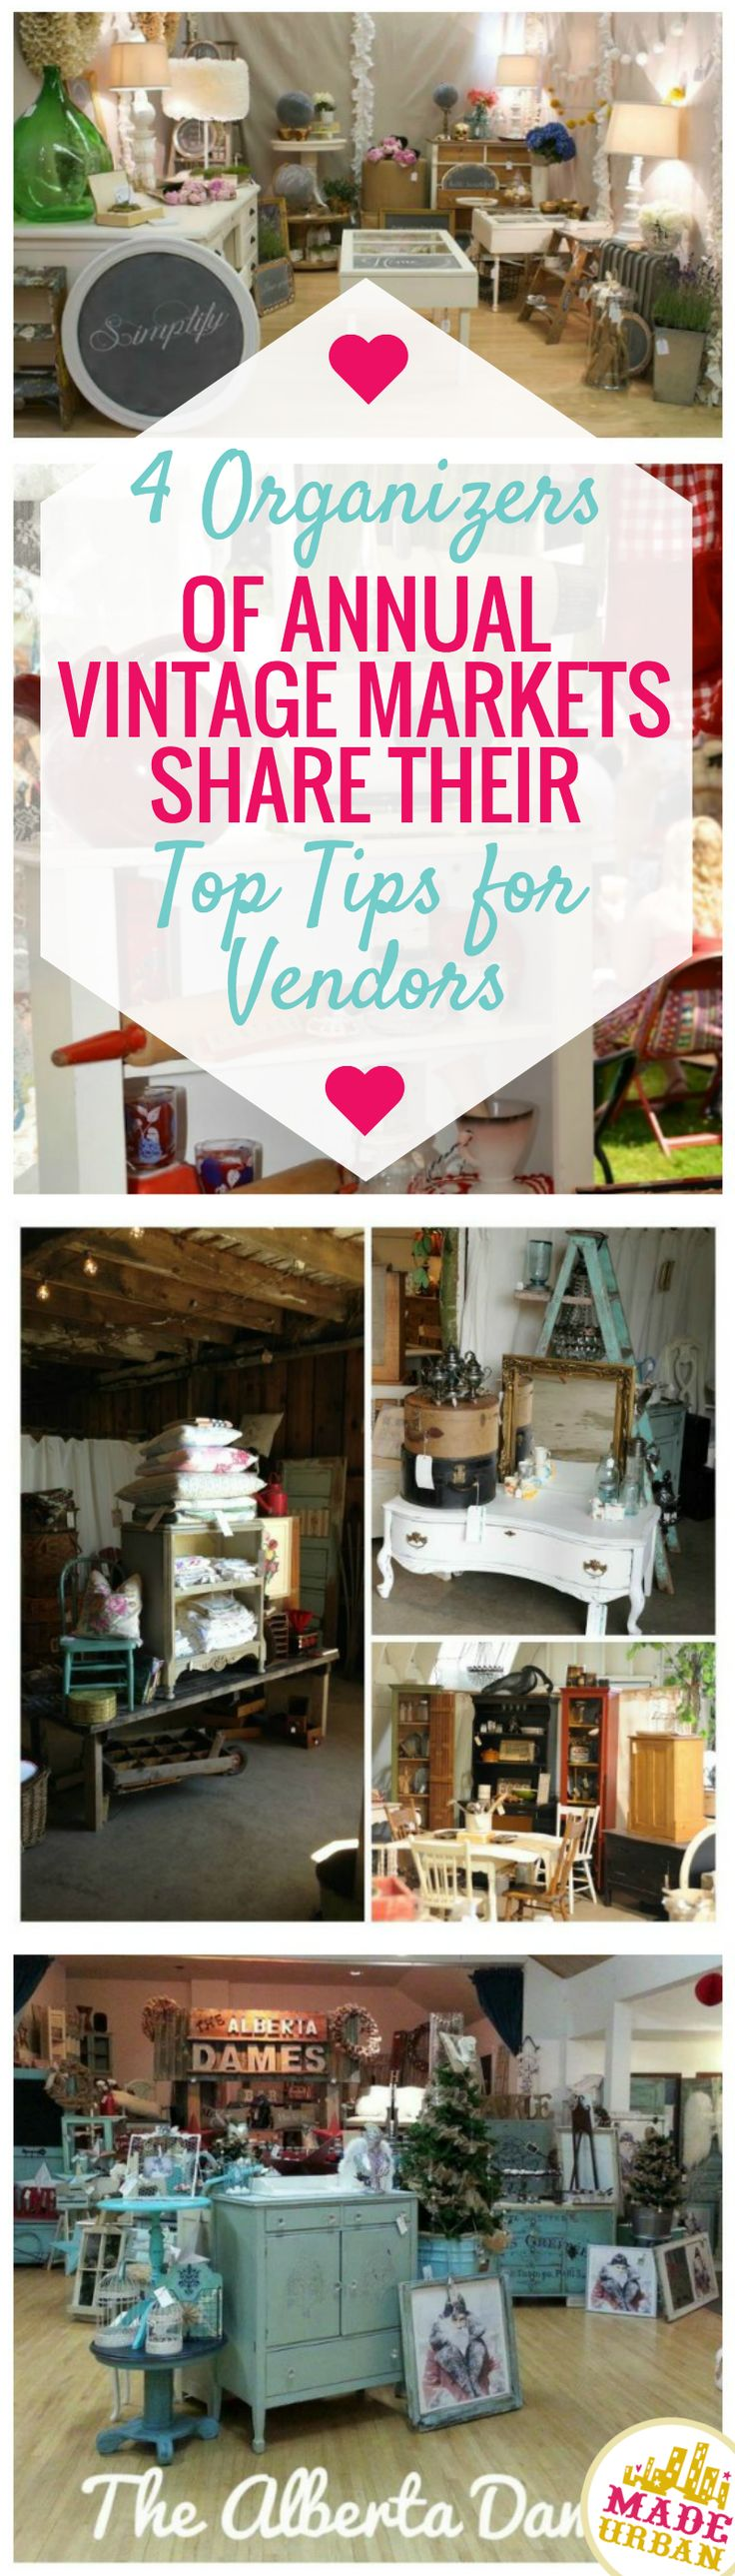 Check out some awesome advice from organizers who know a good booth. Increase your sales at vintage and handmade markets.